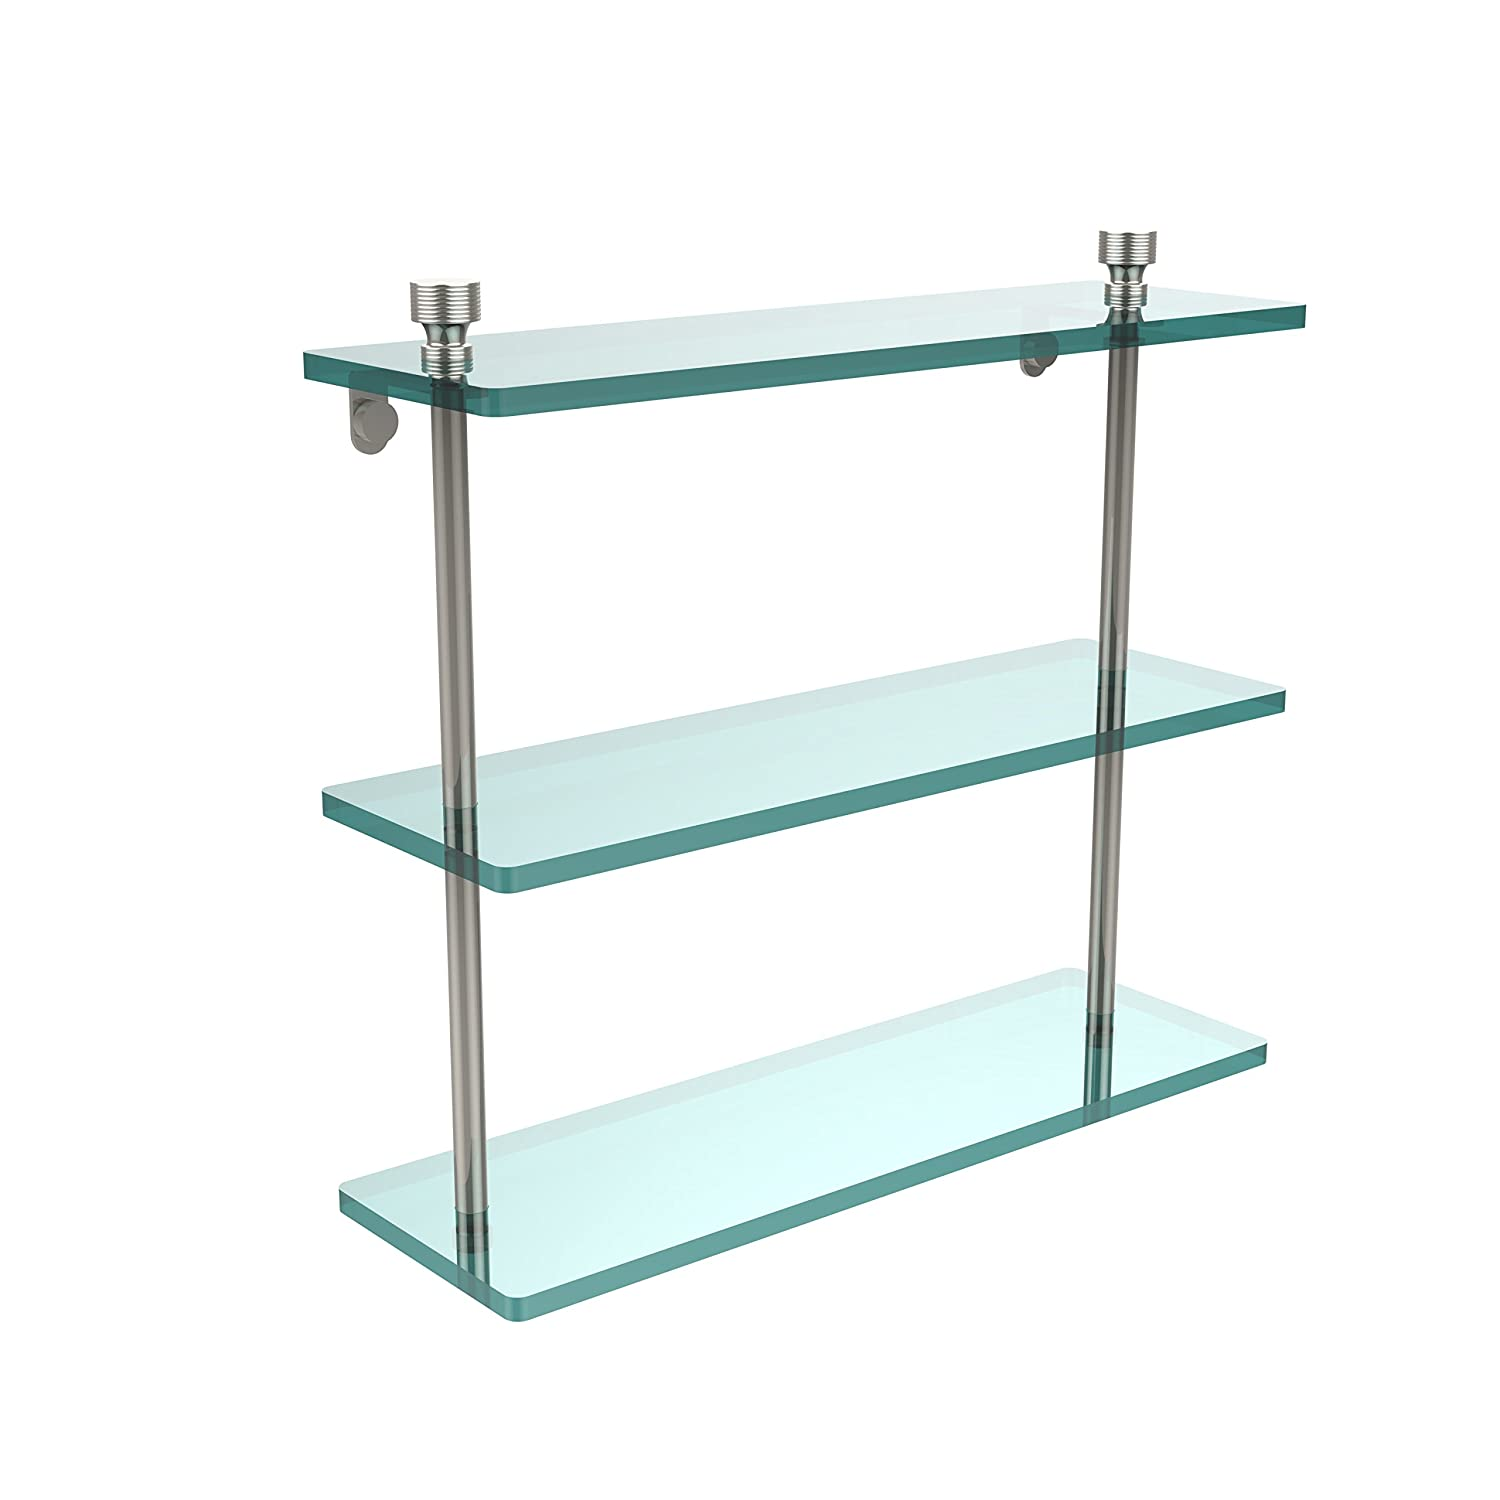 Allied Brass FT-5/16-PNI Triple Glass Shelf 16 Polished Nickel by Allied Brass B00319USXG  光沢ニッケル